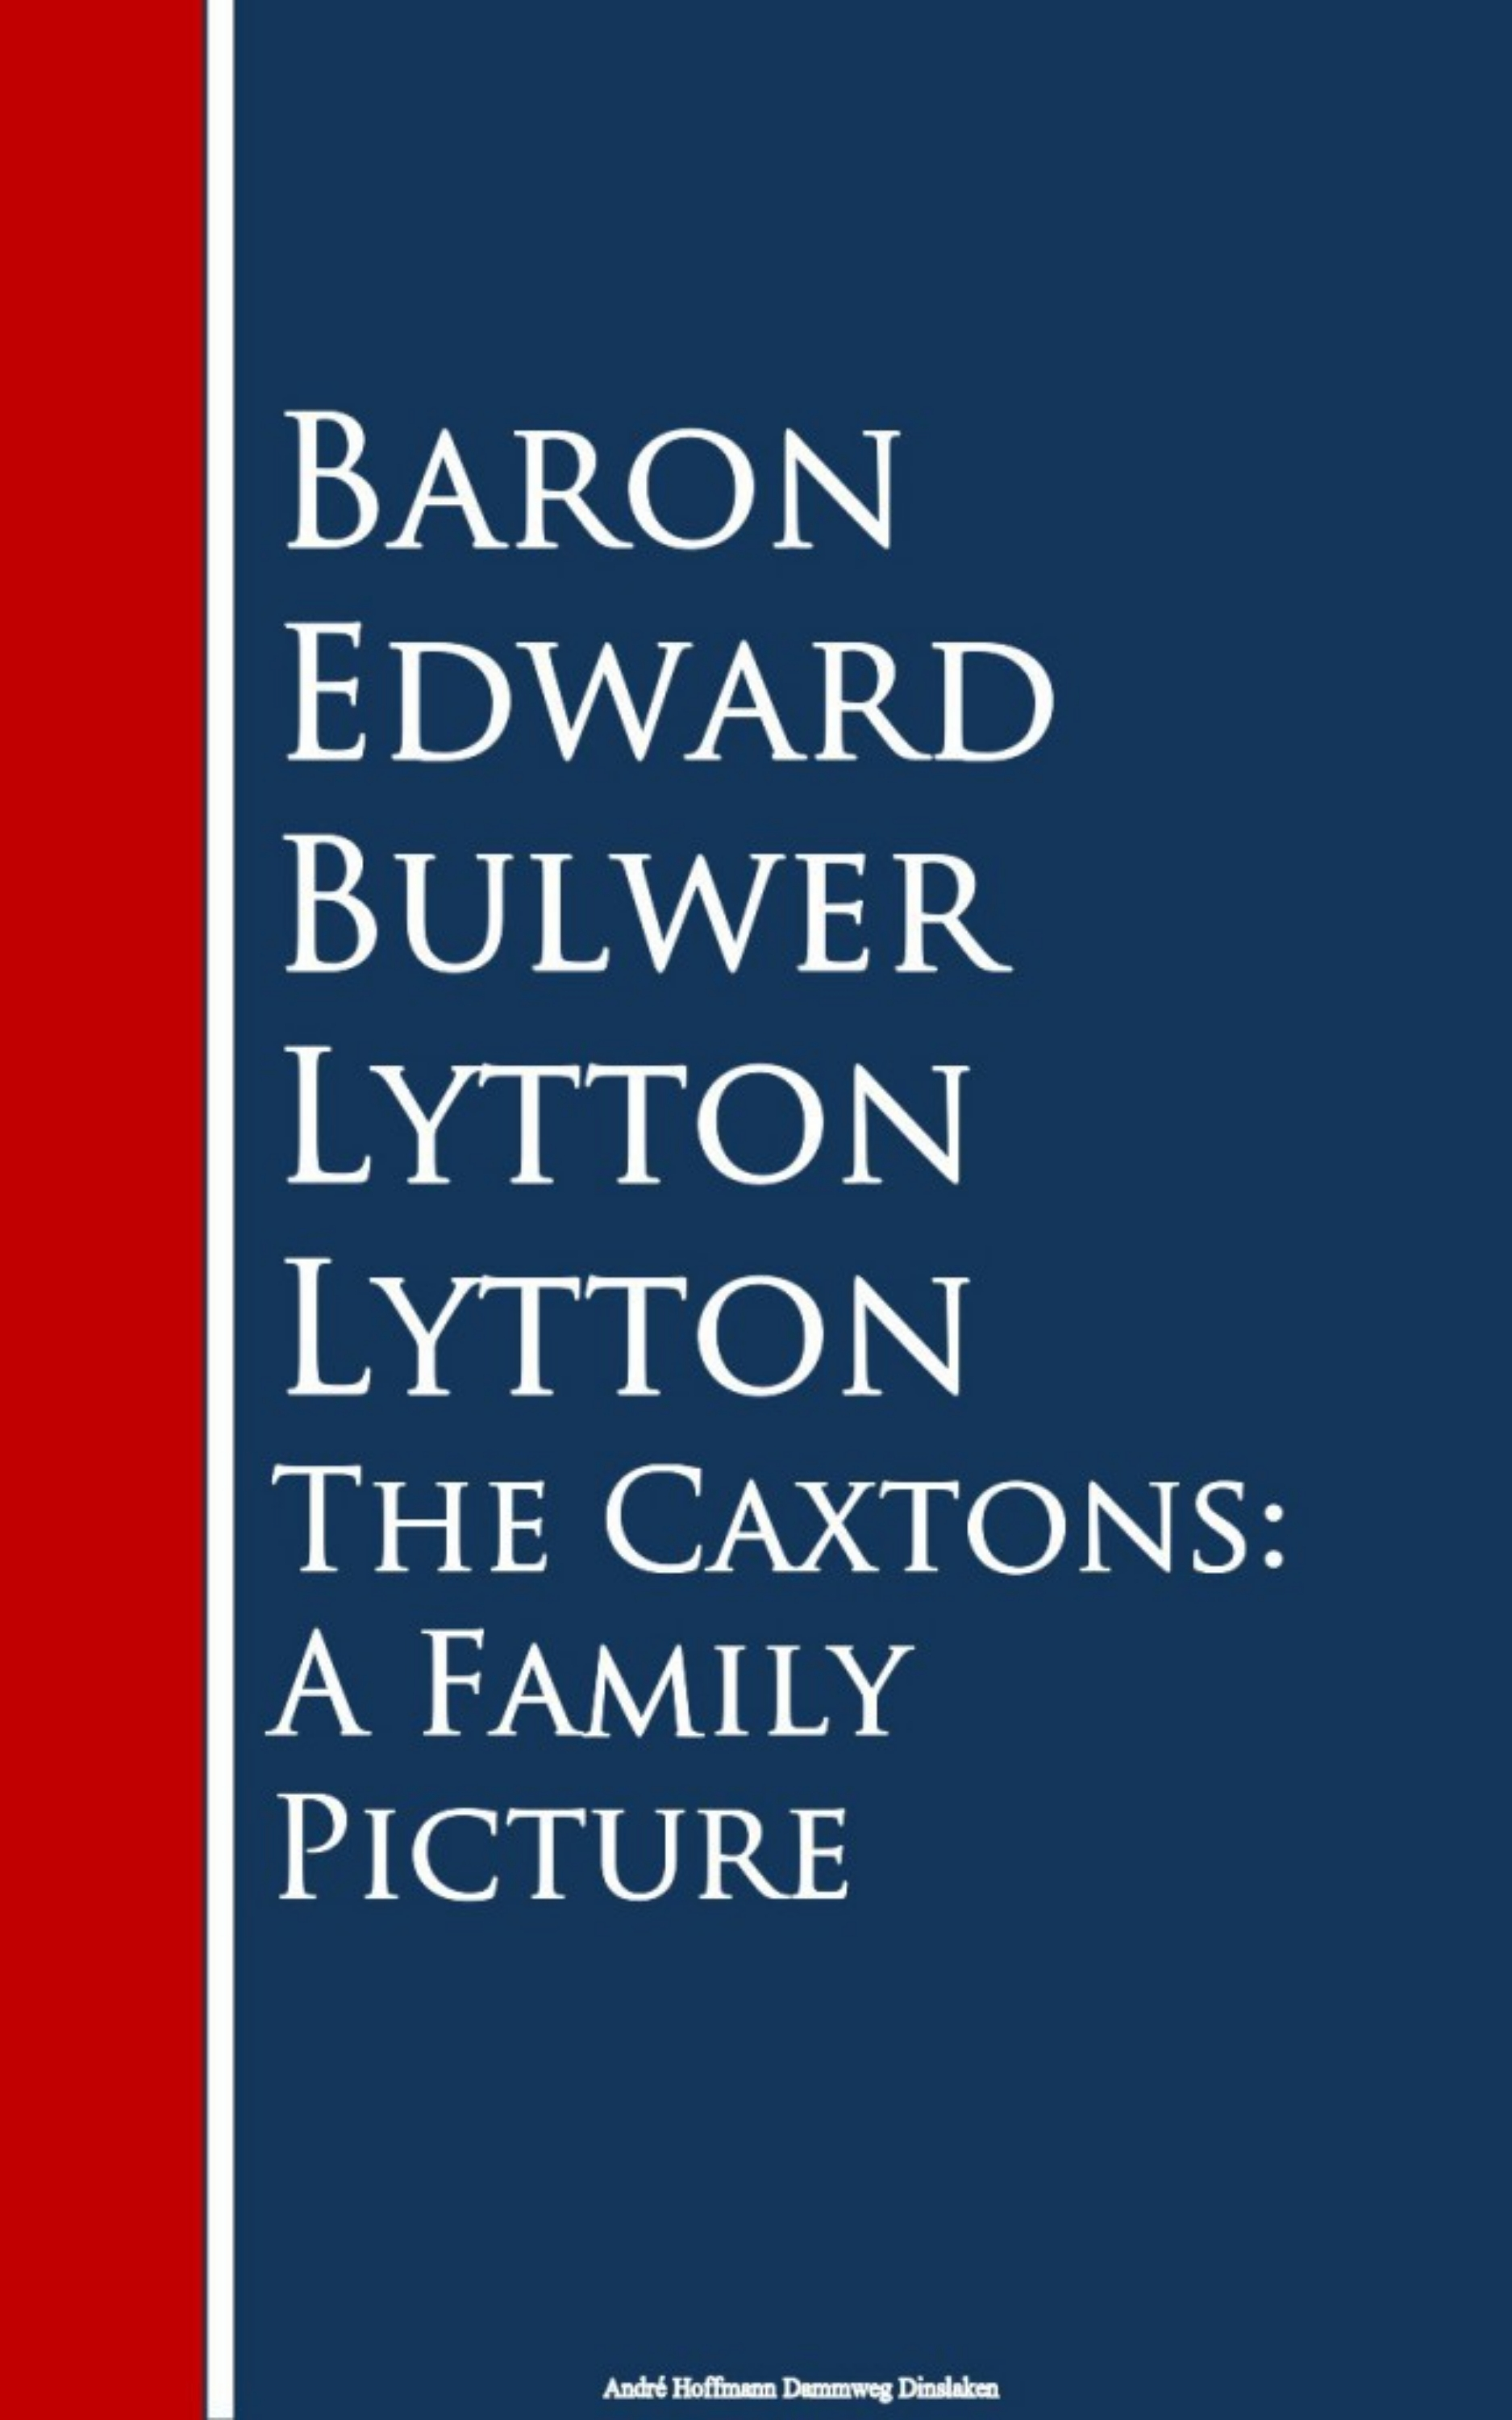 The Caxtons: A Family Picture